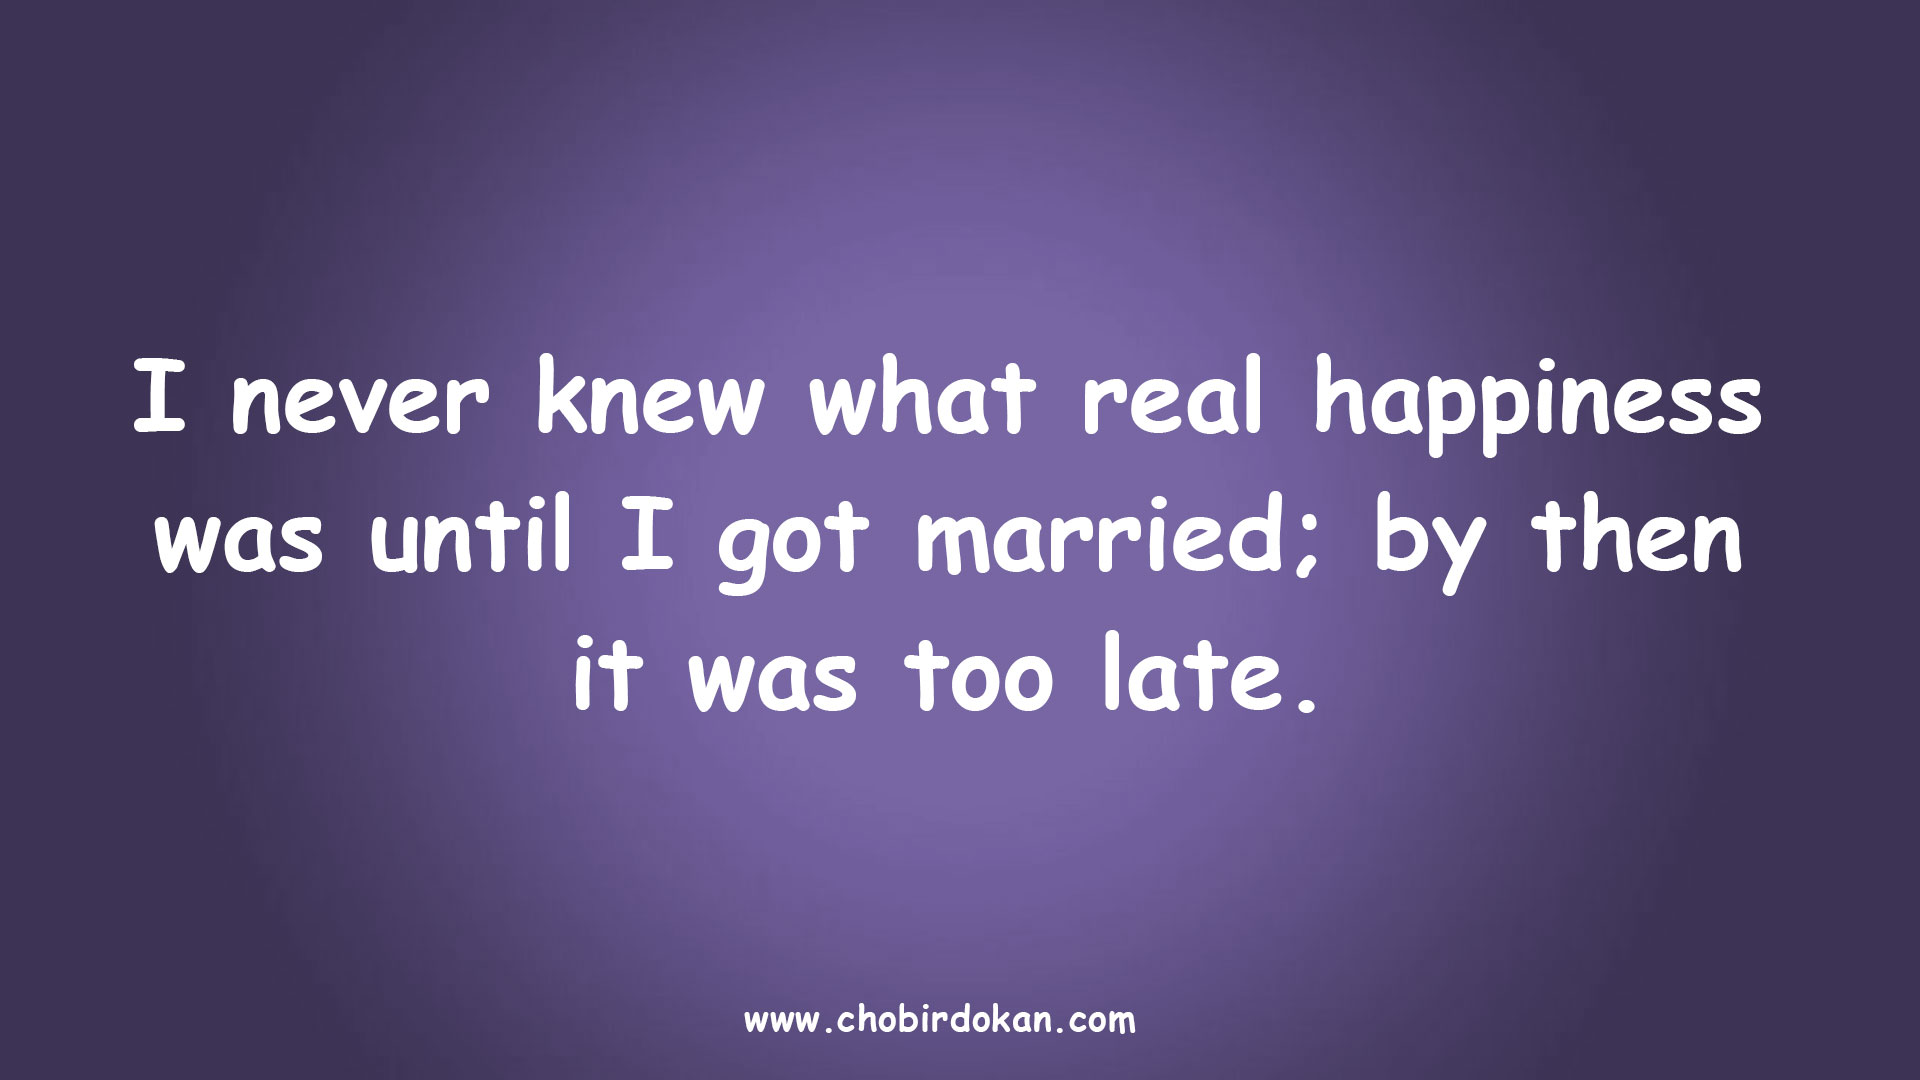 Funny Wedding Gift Quotes : Funny Marriage Quotes Images -Funny Wedding Sayings